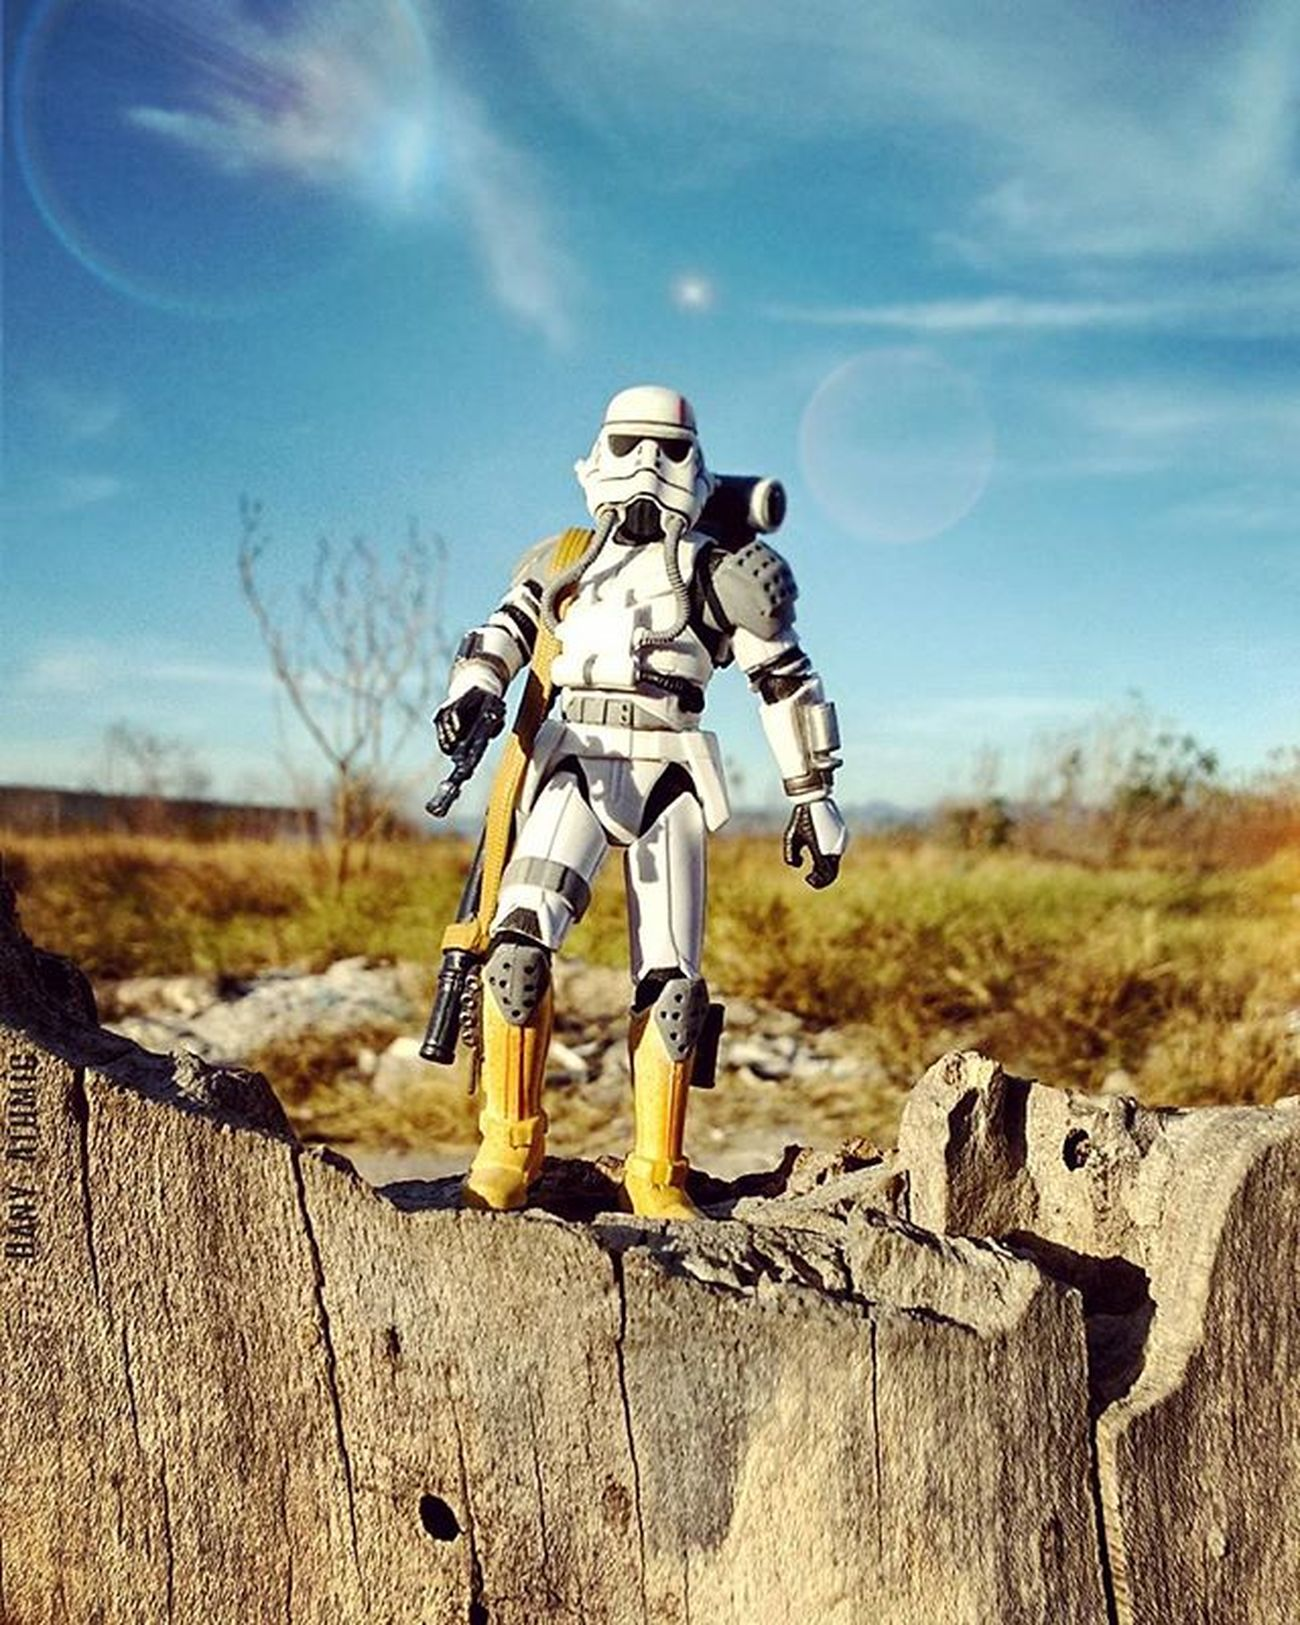 EvoTrooper (I really like this fig friends 👍😋) here the pic from the session of yesterday in the park, hope you like it buddies EvoTrooper Theforceunleashed Starwars Starwarstoyfigs Starwarsdaily TheSkywalkerlegacy Tcb_comeoverherepal